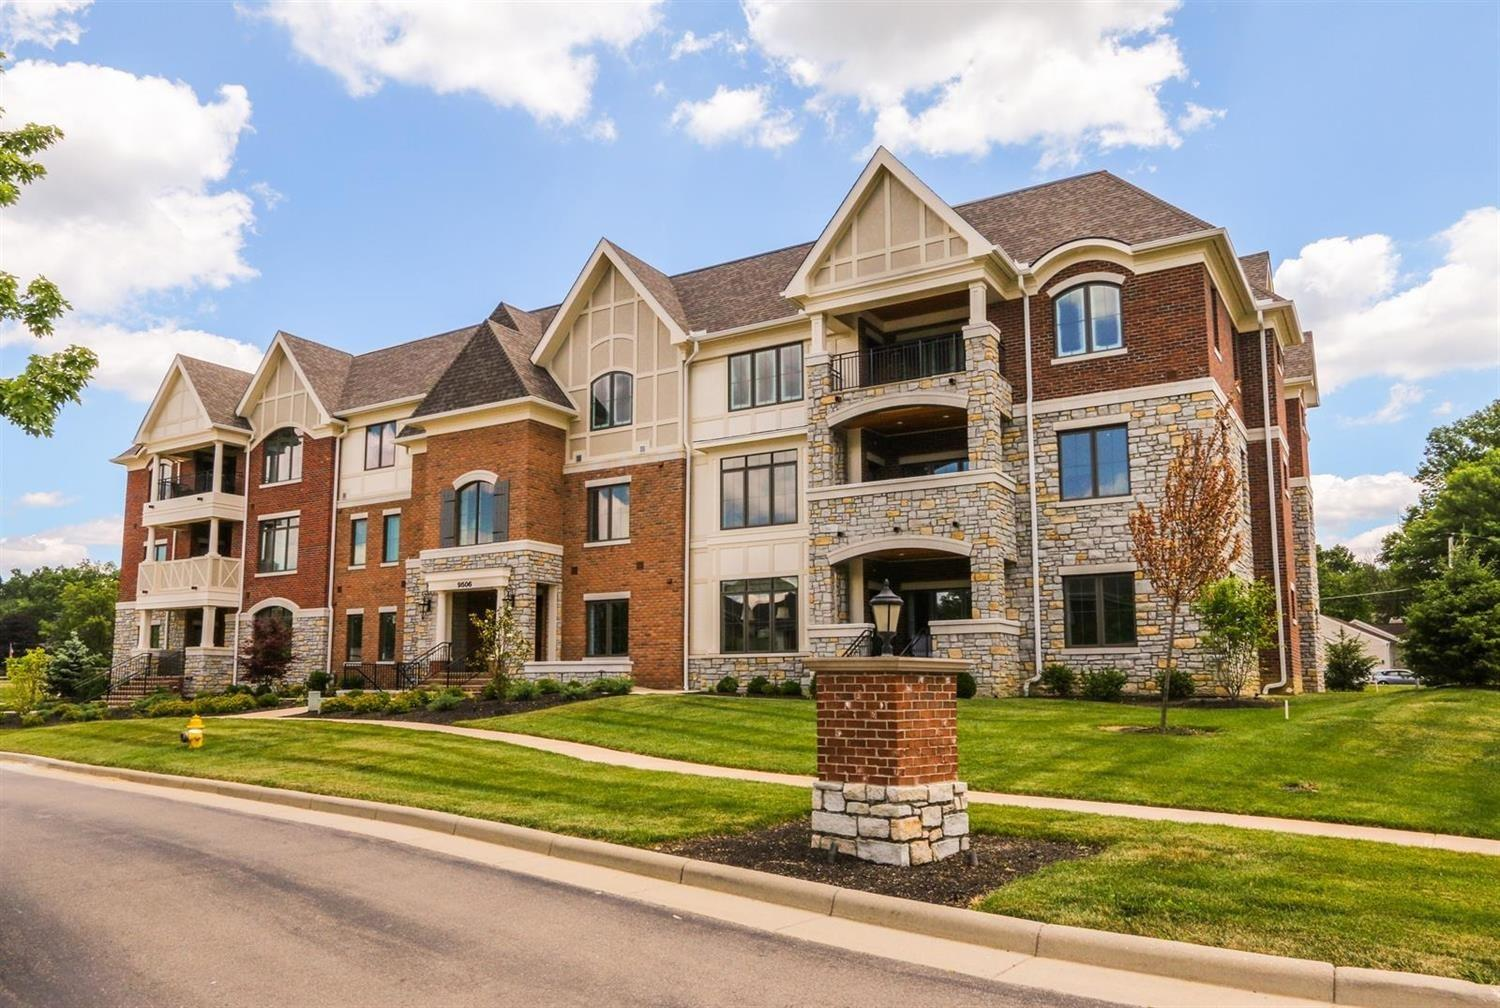 Photo 2 for 9506 Park Manor Blvd #102 Blue Ash, OH 45242